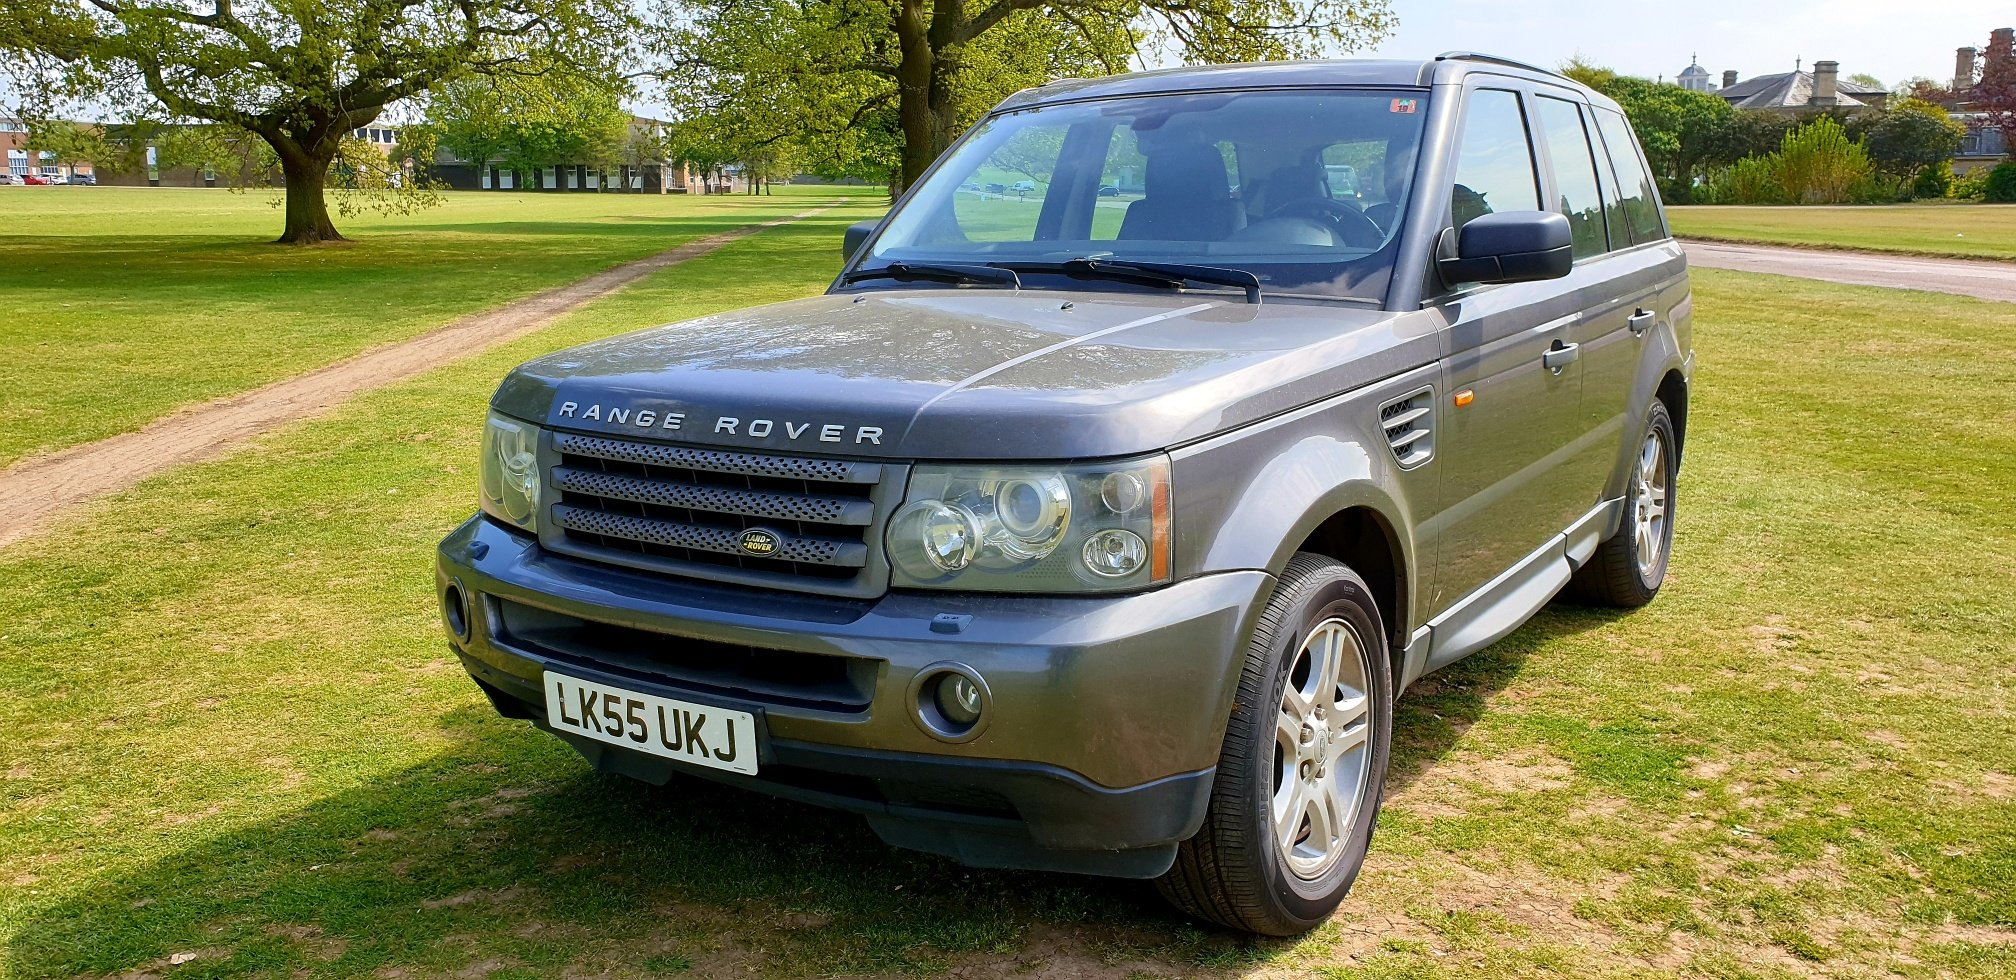 LHD 2006 RANGE ROVER SPORT SE 2.7 TDV6,LEFT HAND DRIVE For Sale (picture 2 of 6)